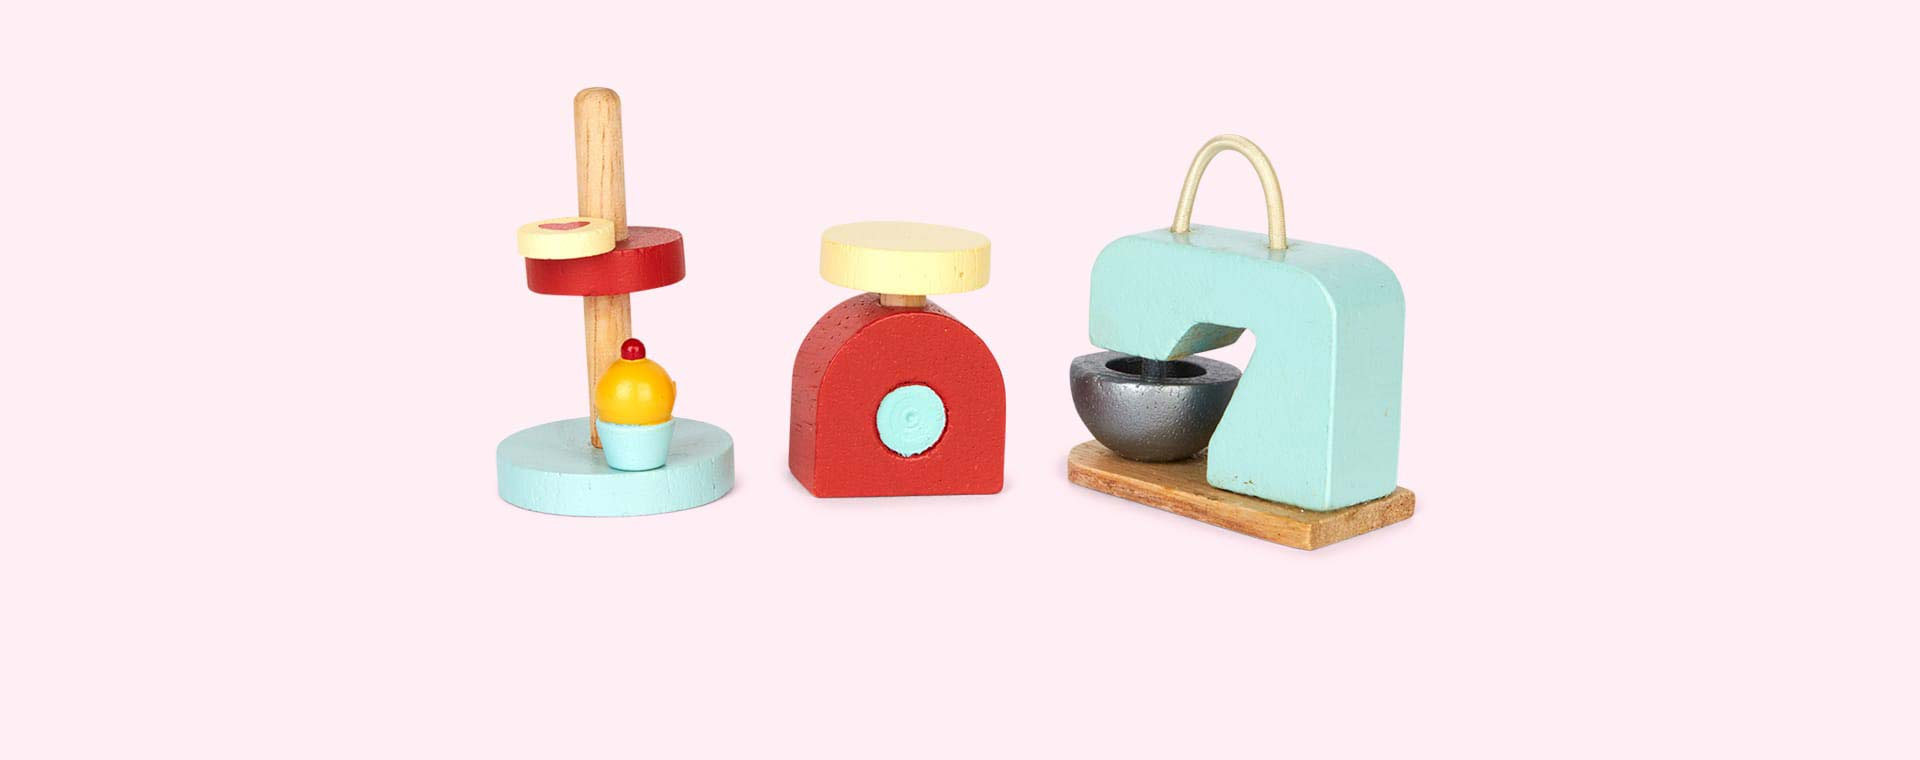 Make & Bake Le Toy Van Make & Bake Accessory Pack